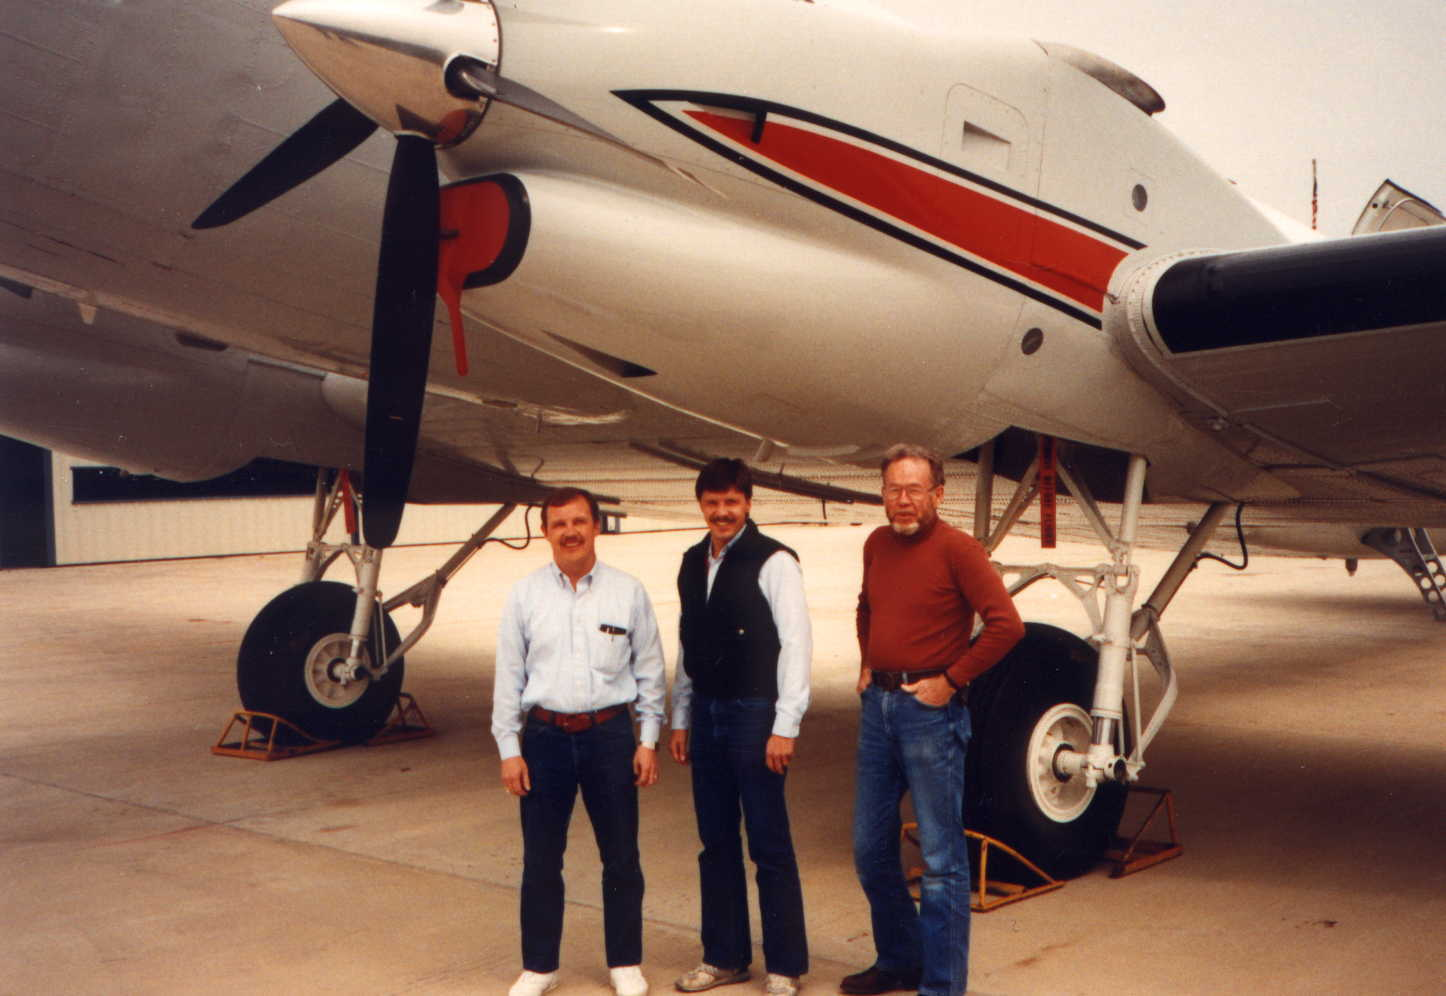 Photo of the DC-3 after it received a turbine conversion and new paint, three men standing near it.